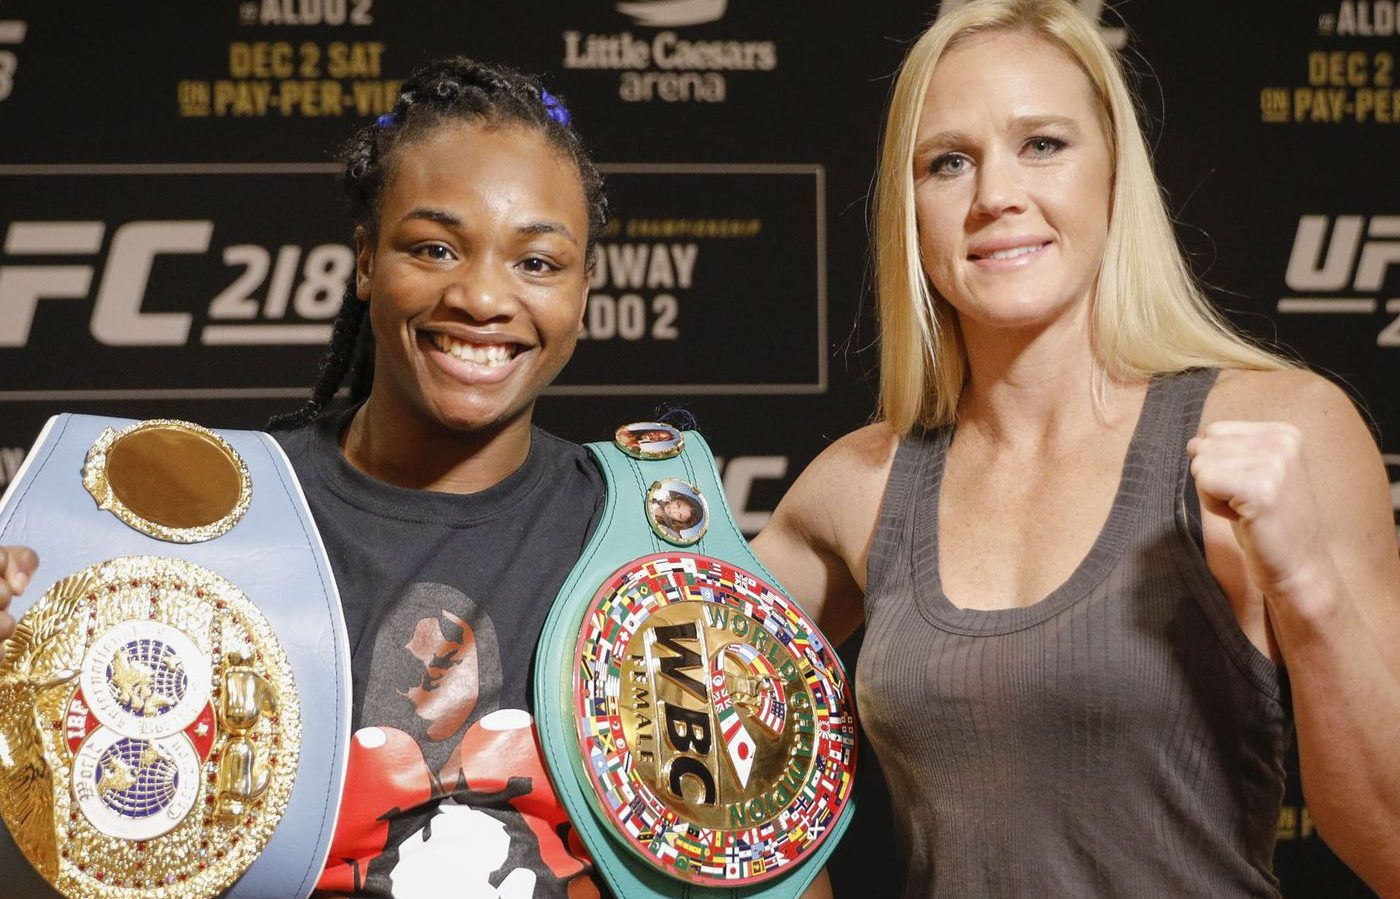 Holly Holm says Claressa Shields has tools and ambition to excel in MMA - Holly